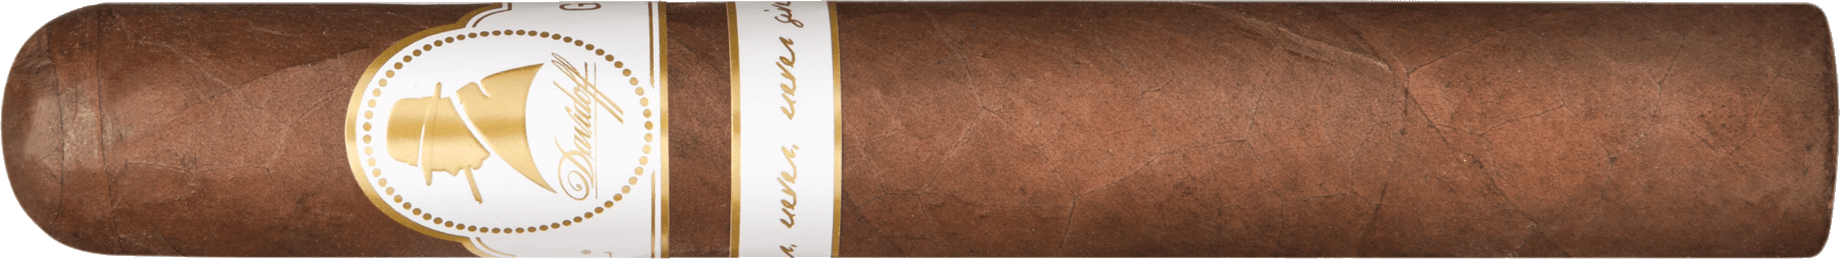 Winston Churchill Limited Edition 2016 (Gran Toro)